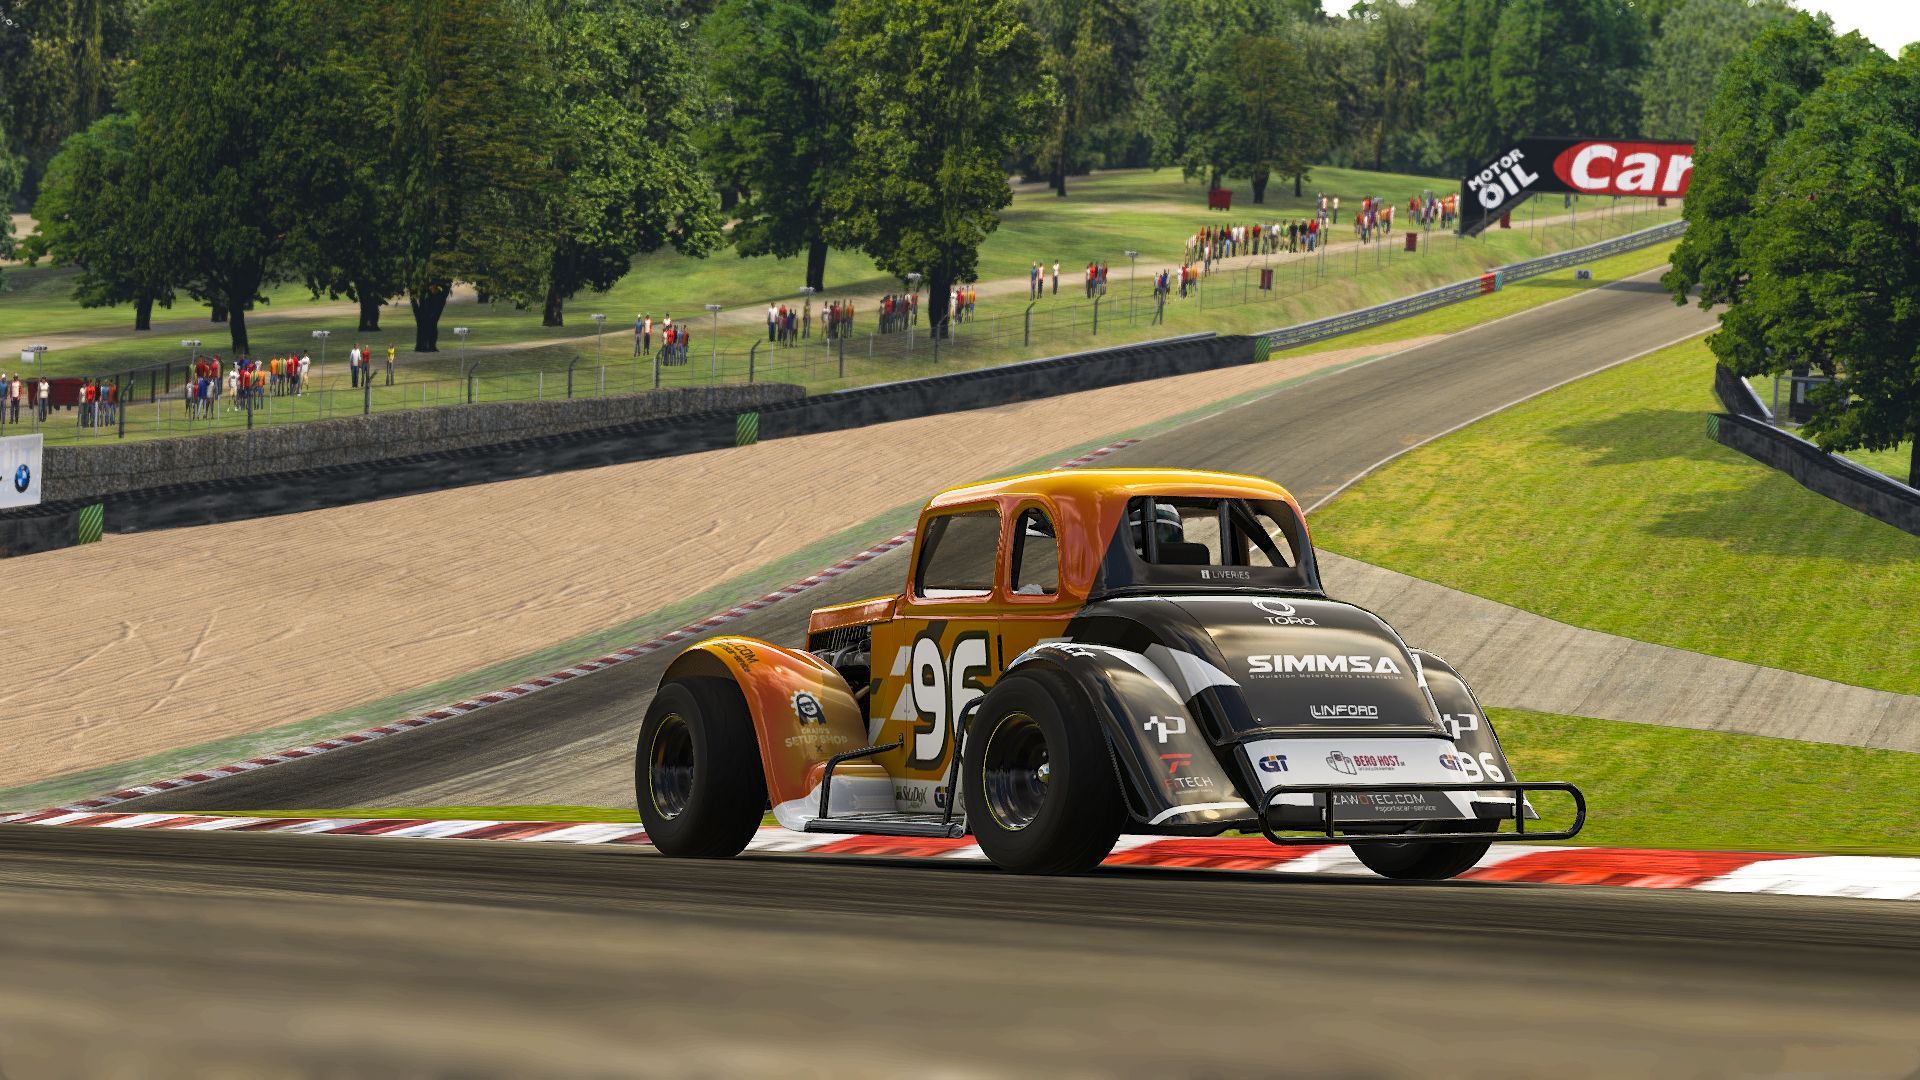 Legends Ford 34 Coupe Iracing In 2020 Coupe Ford Racing